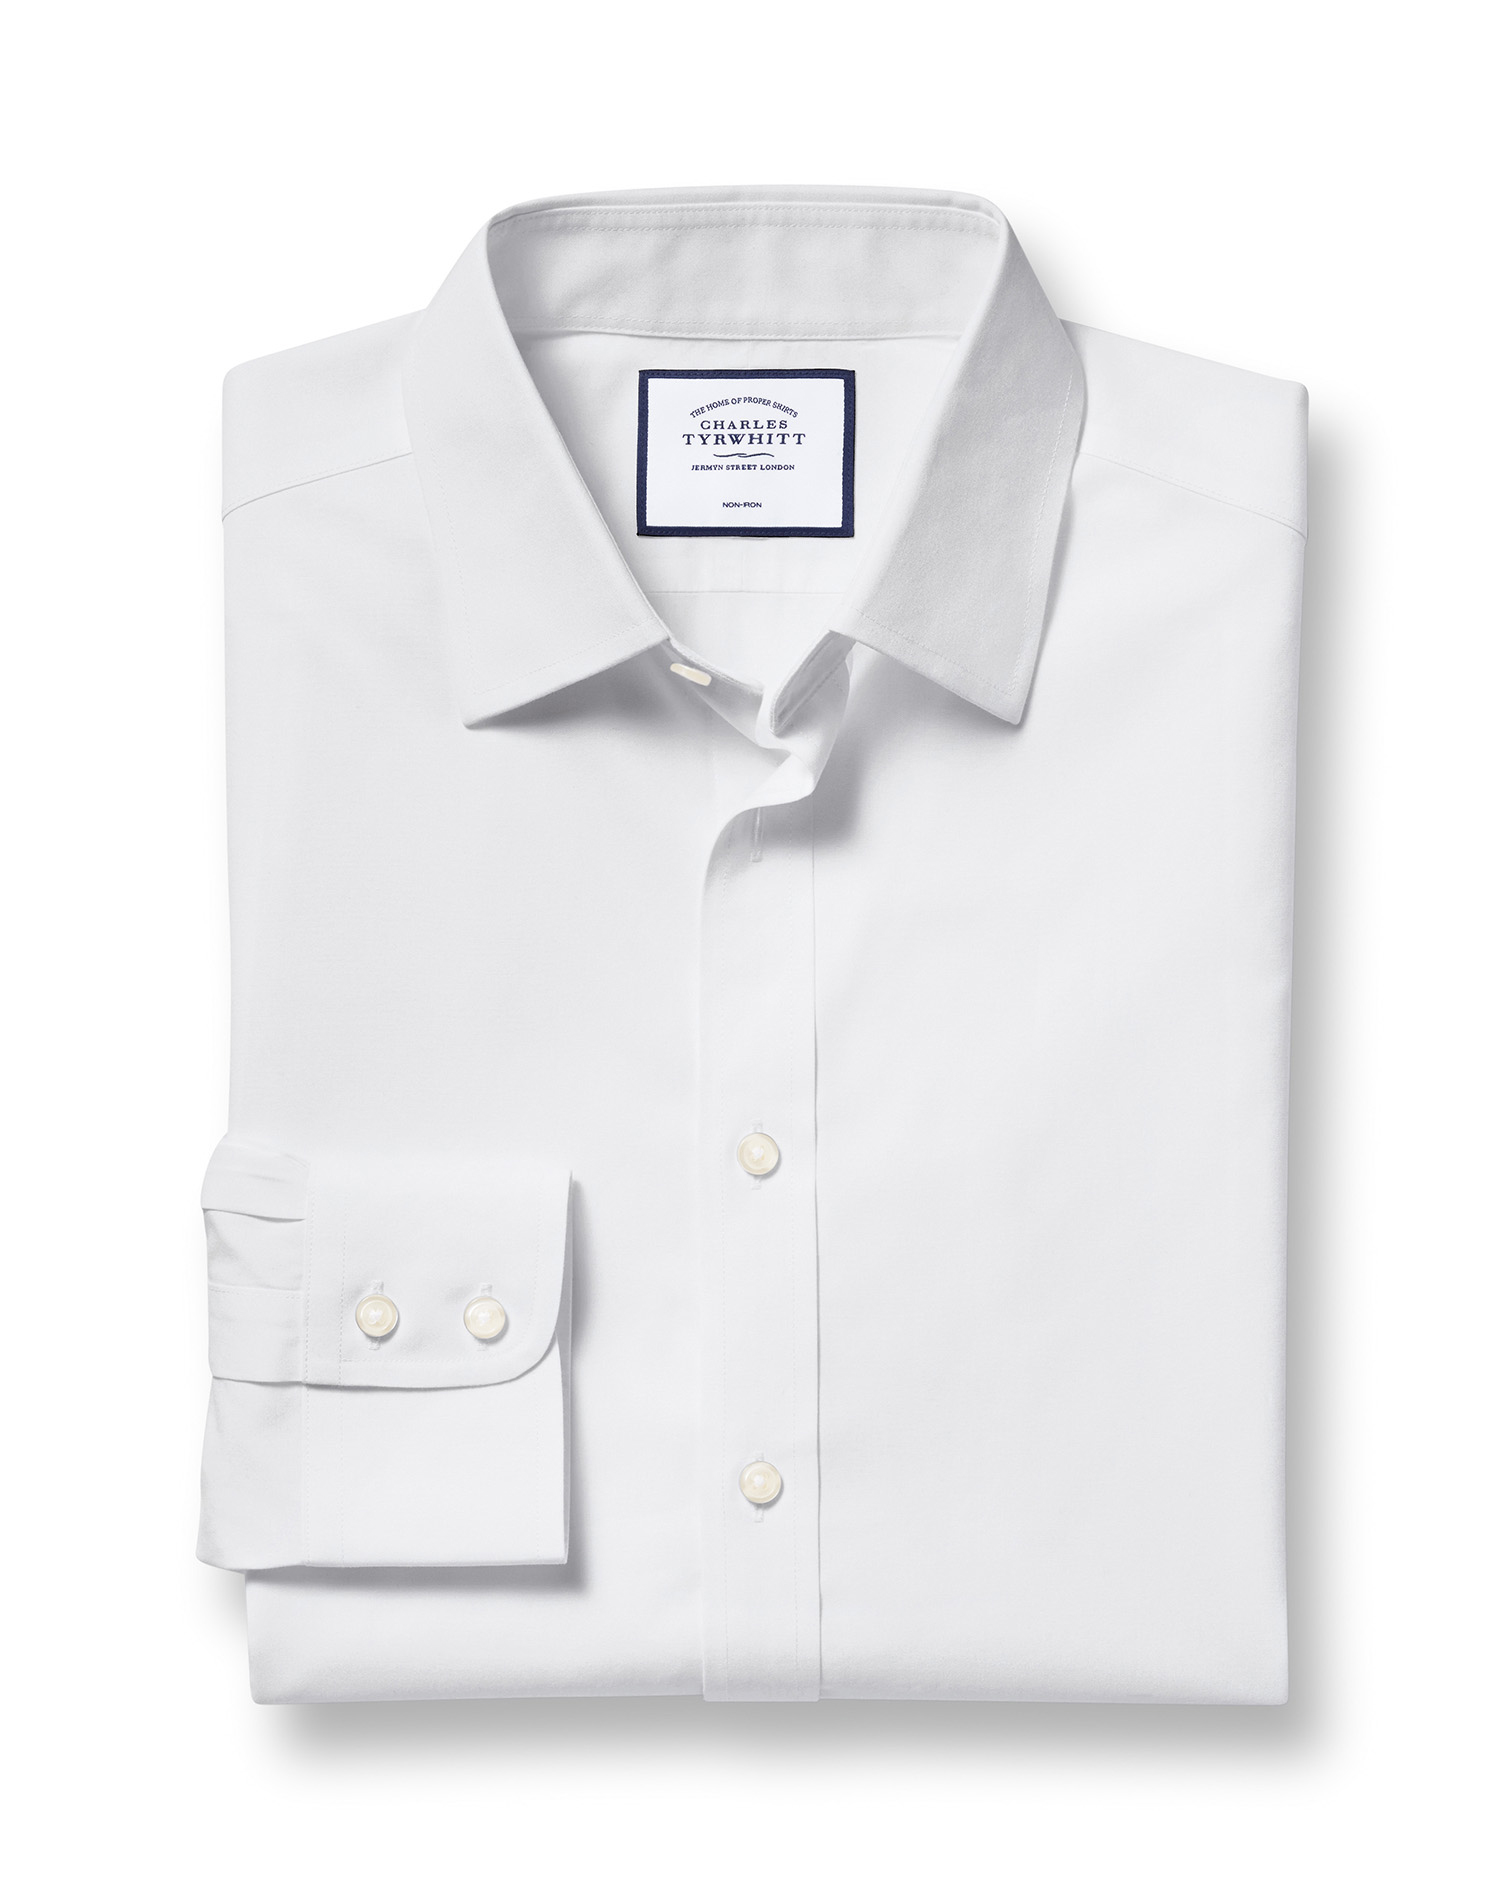 Classic Fit Non-Iron Poplin White Cotton Formal Shirt Single Cuff Size 18/37 by Charles Tyrwhitt